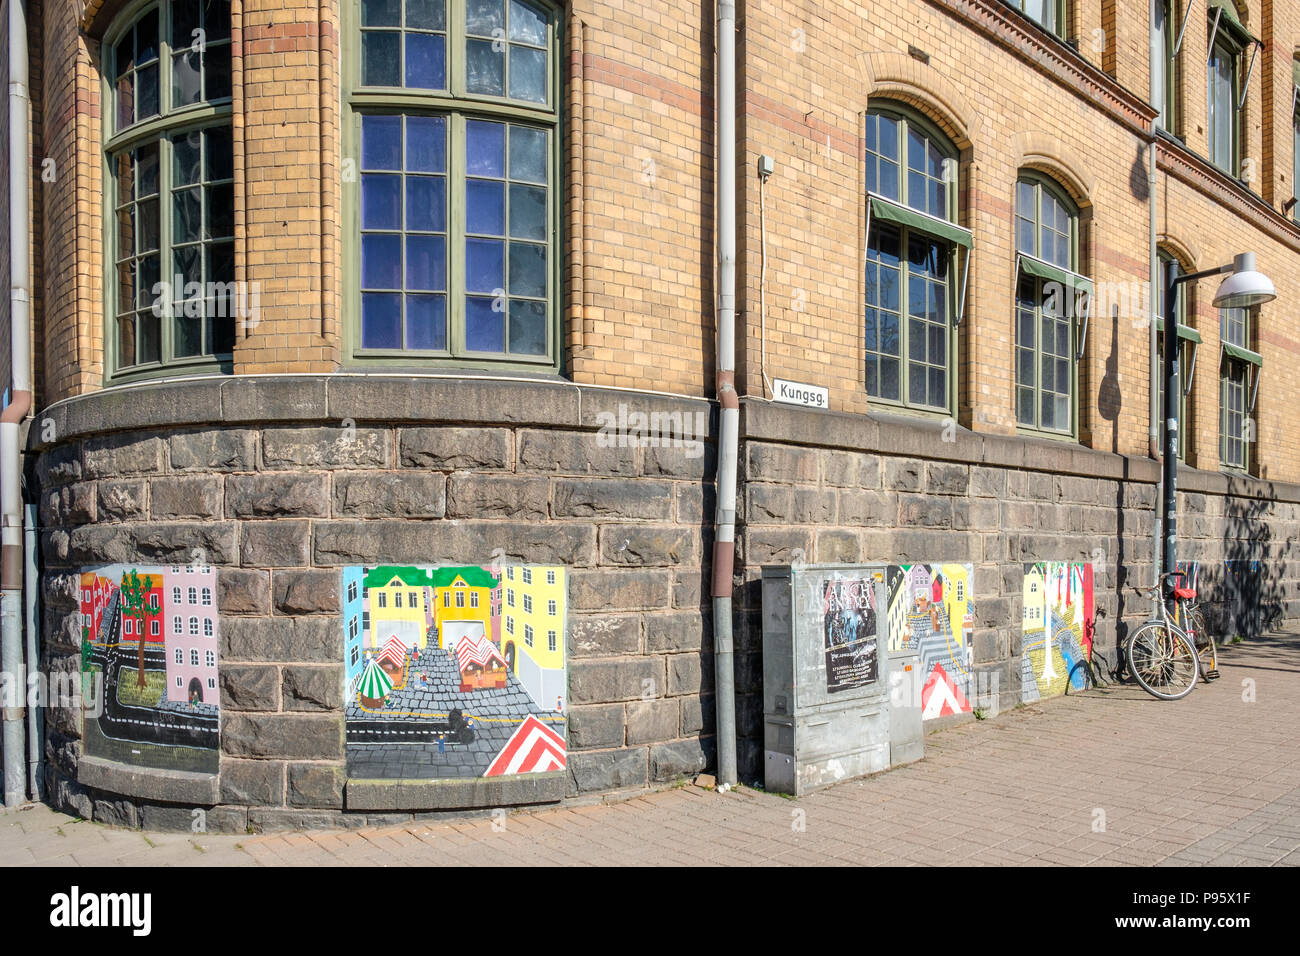 Cultural block Hallarna (The Halls) in Norrköping, Sweden. This old wool factory from 1895 has been turned into a centre for cultural activities. - Stock Image